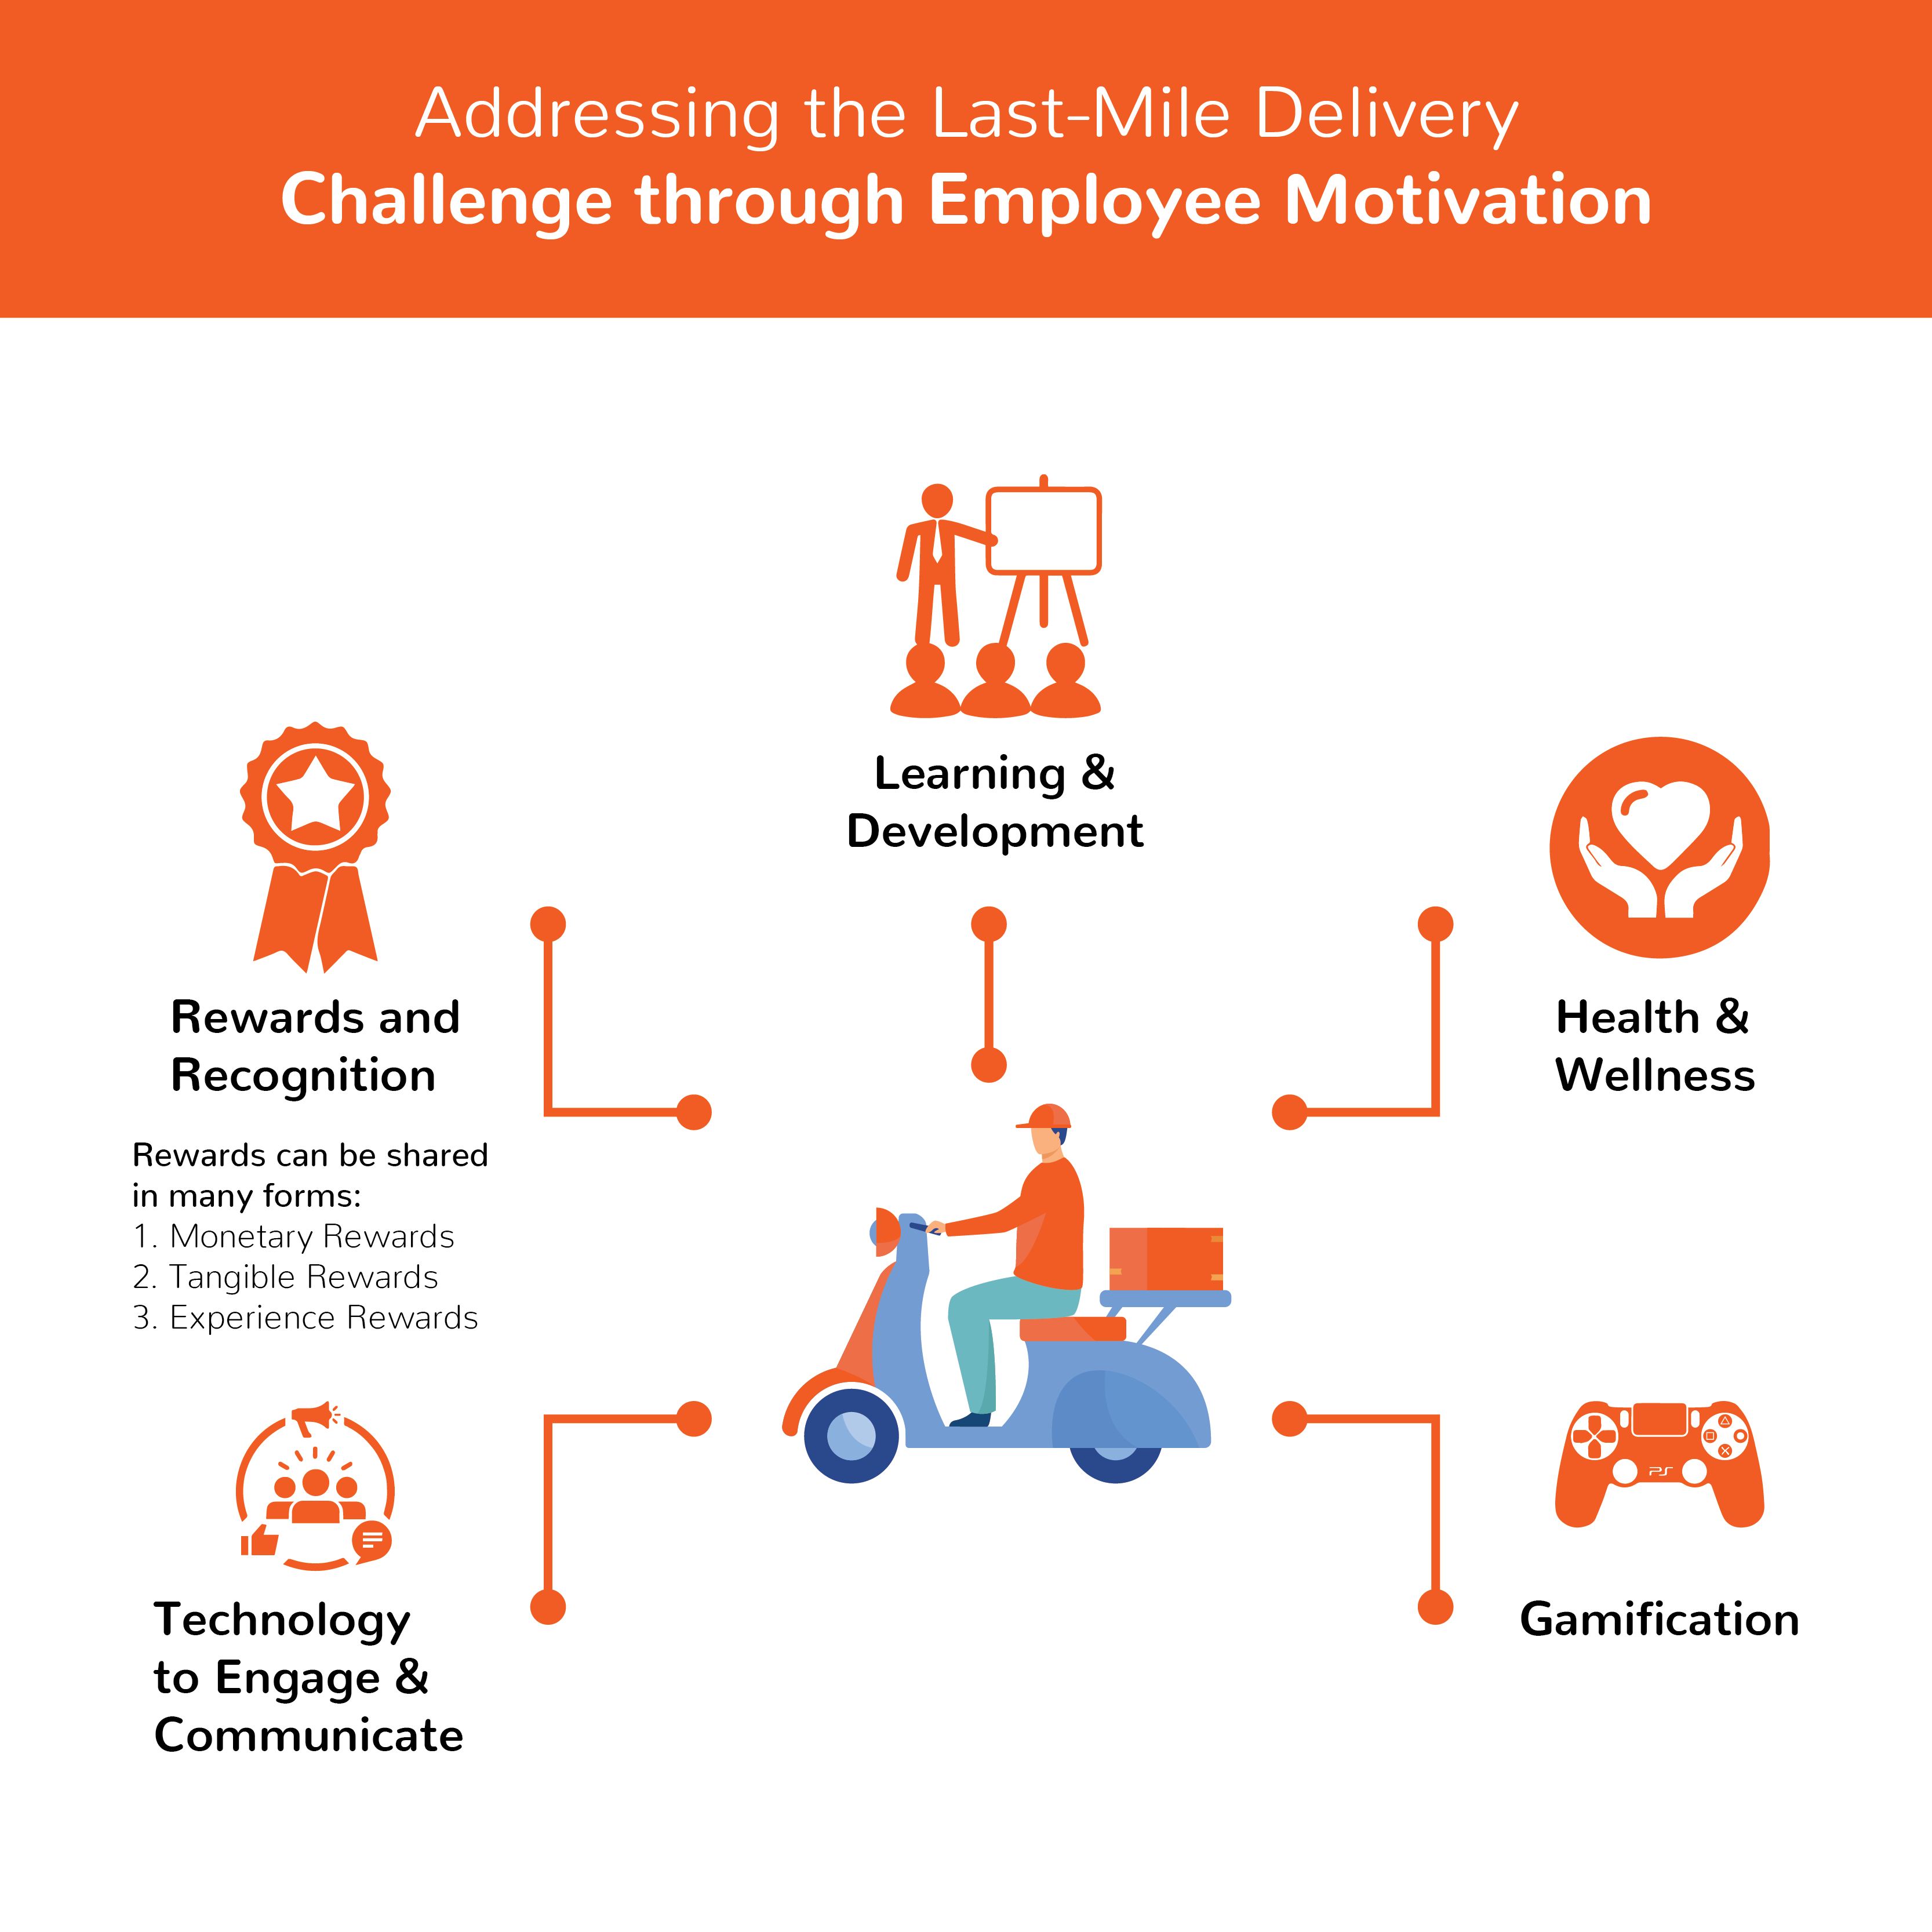 5 most critical factors that will help you keep your last mile workforce motivated and engaged